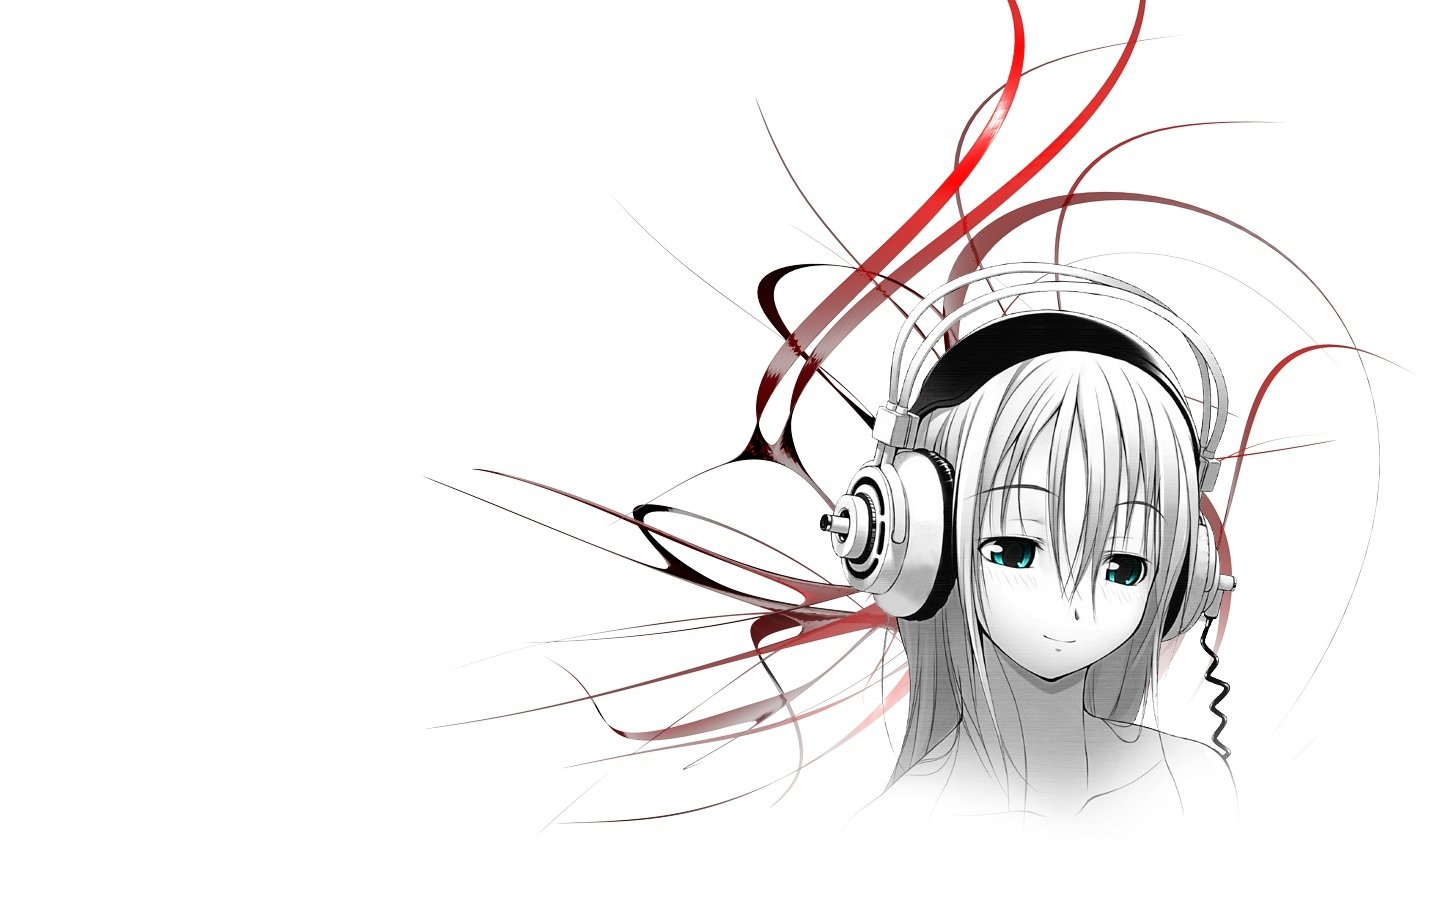 Artistic - Women  Woman Headphones Cute Artistic Wallpaper